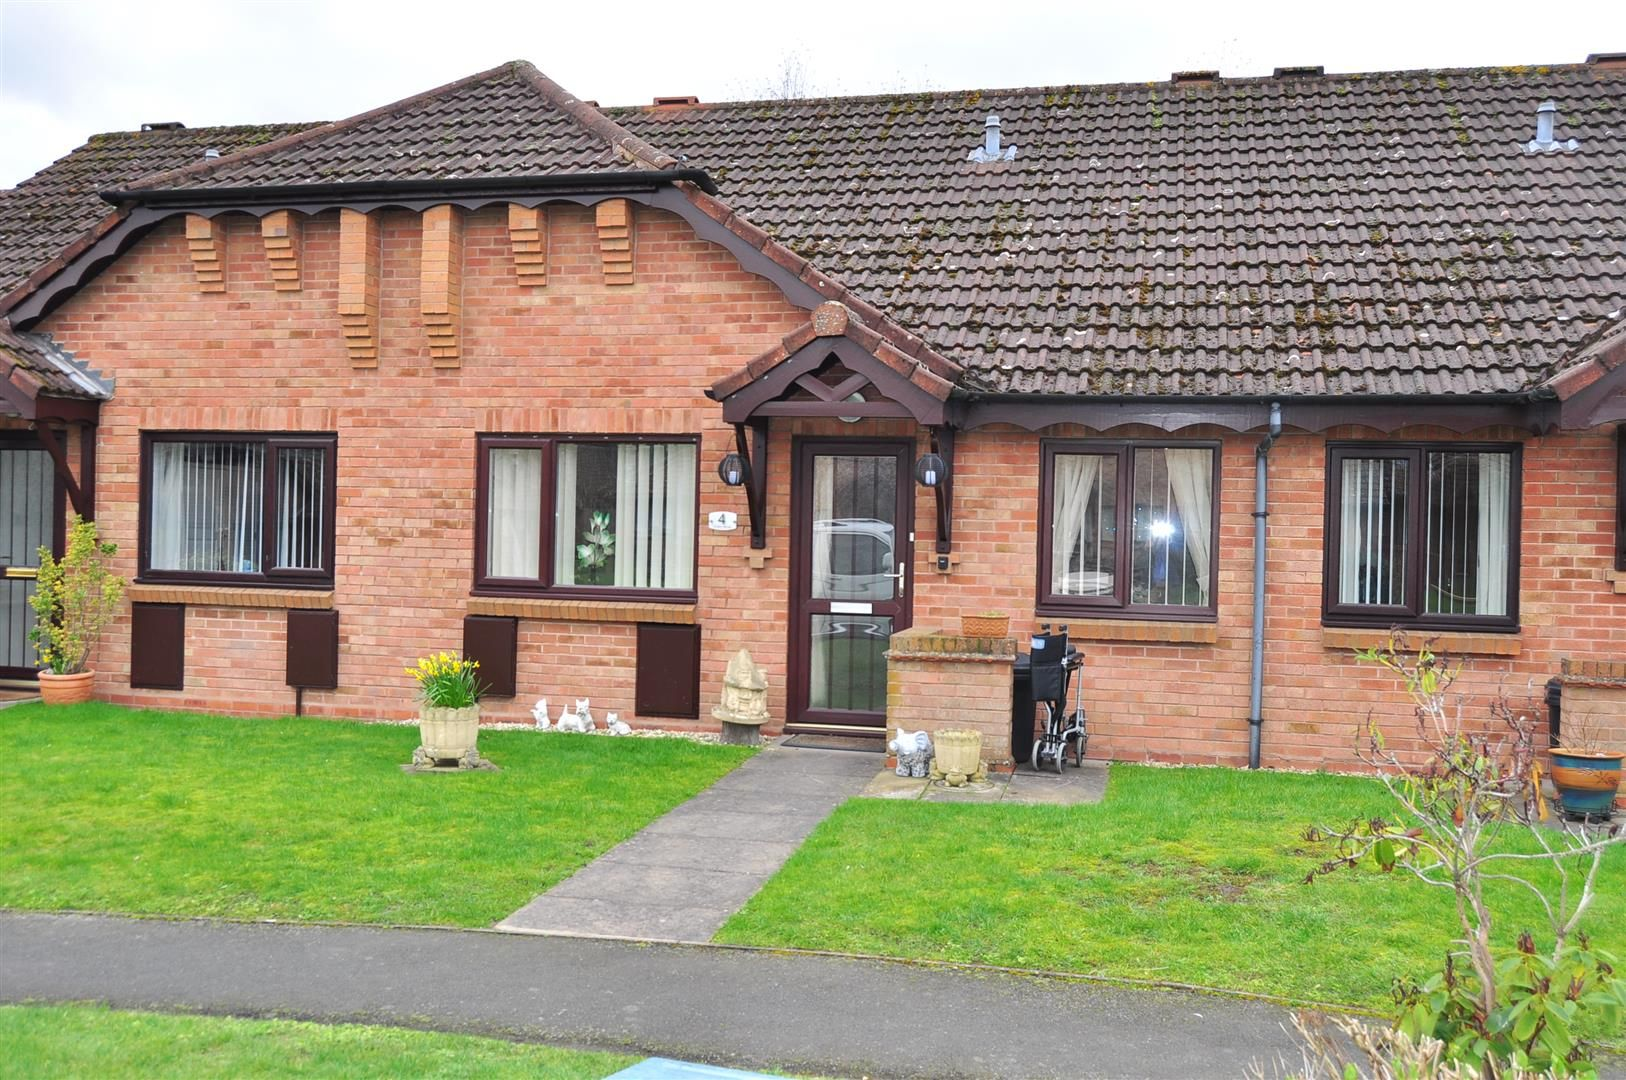 2 bed terraced-bungalow for sale - Property Image 1